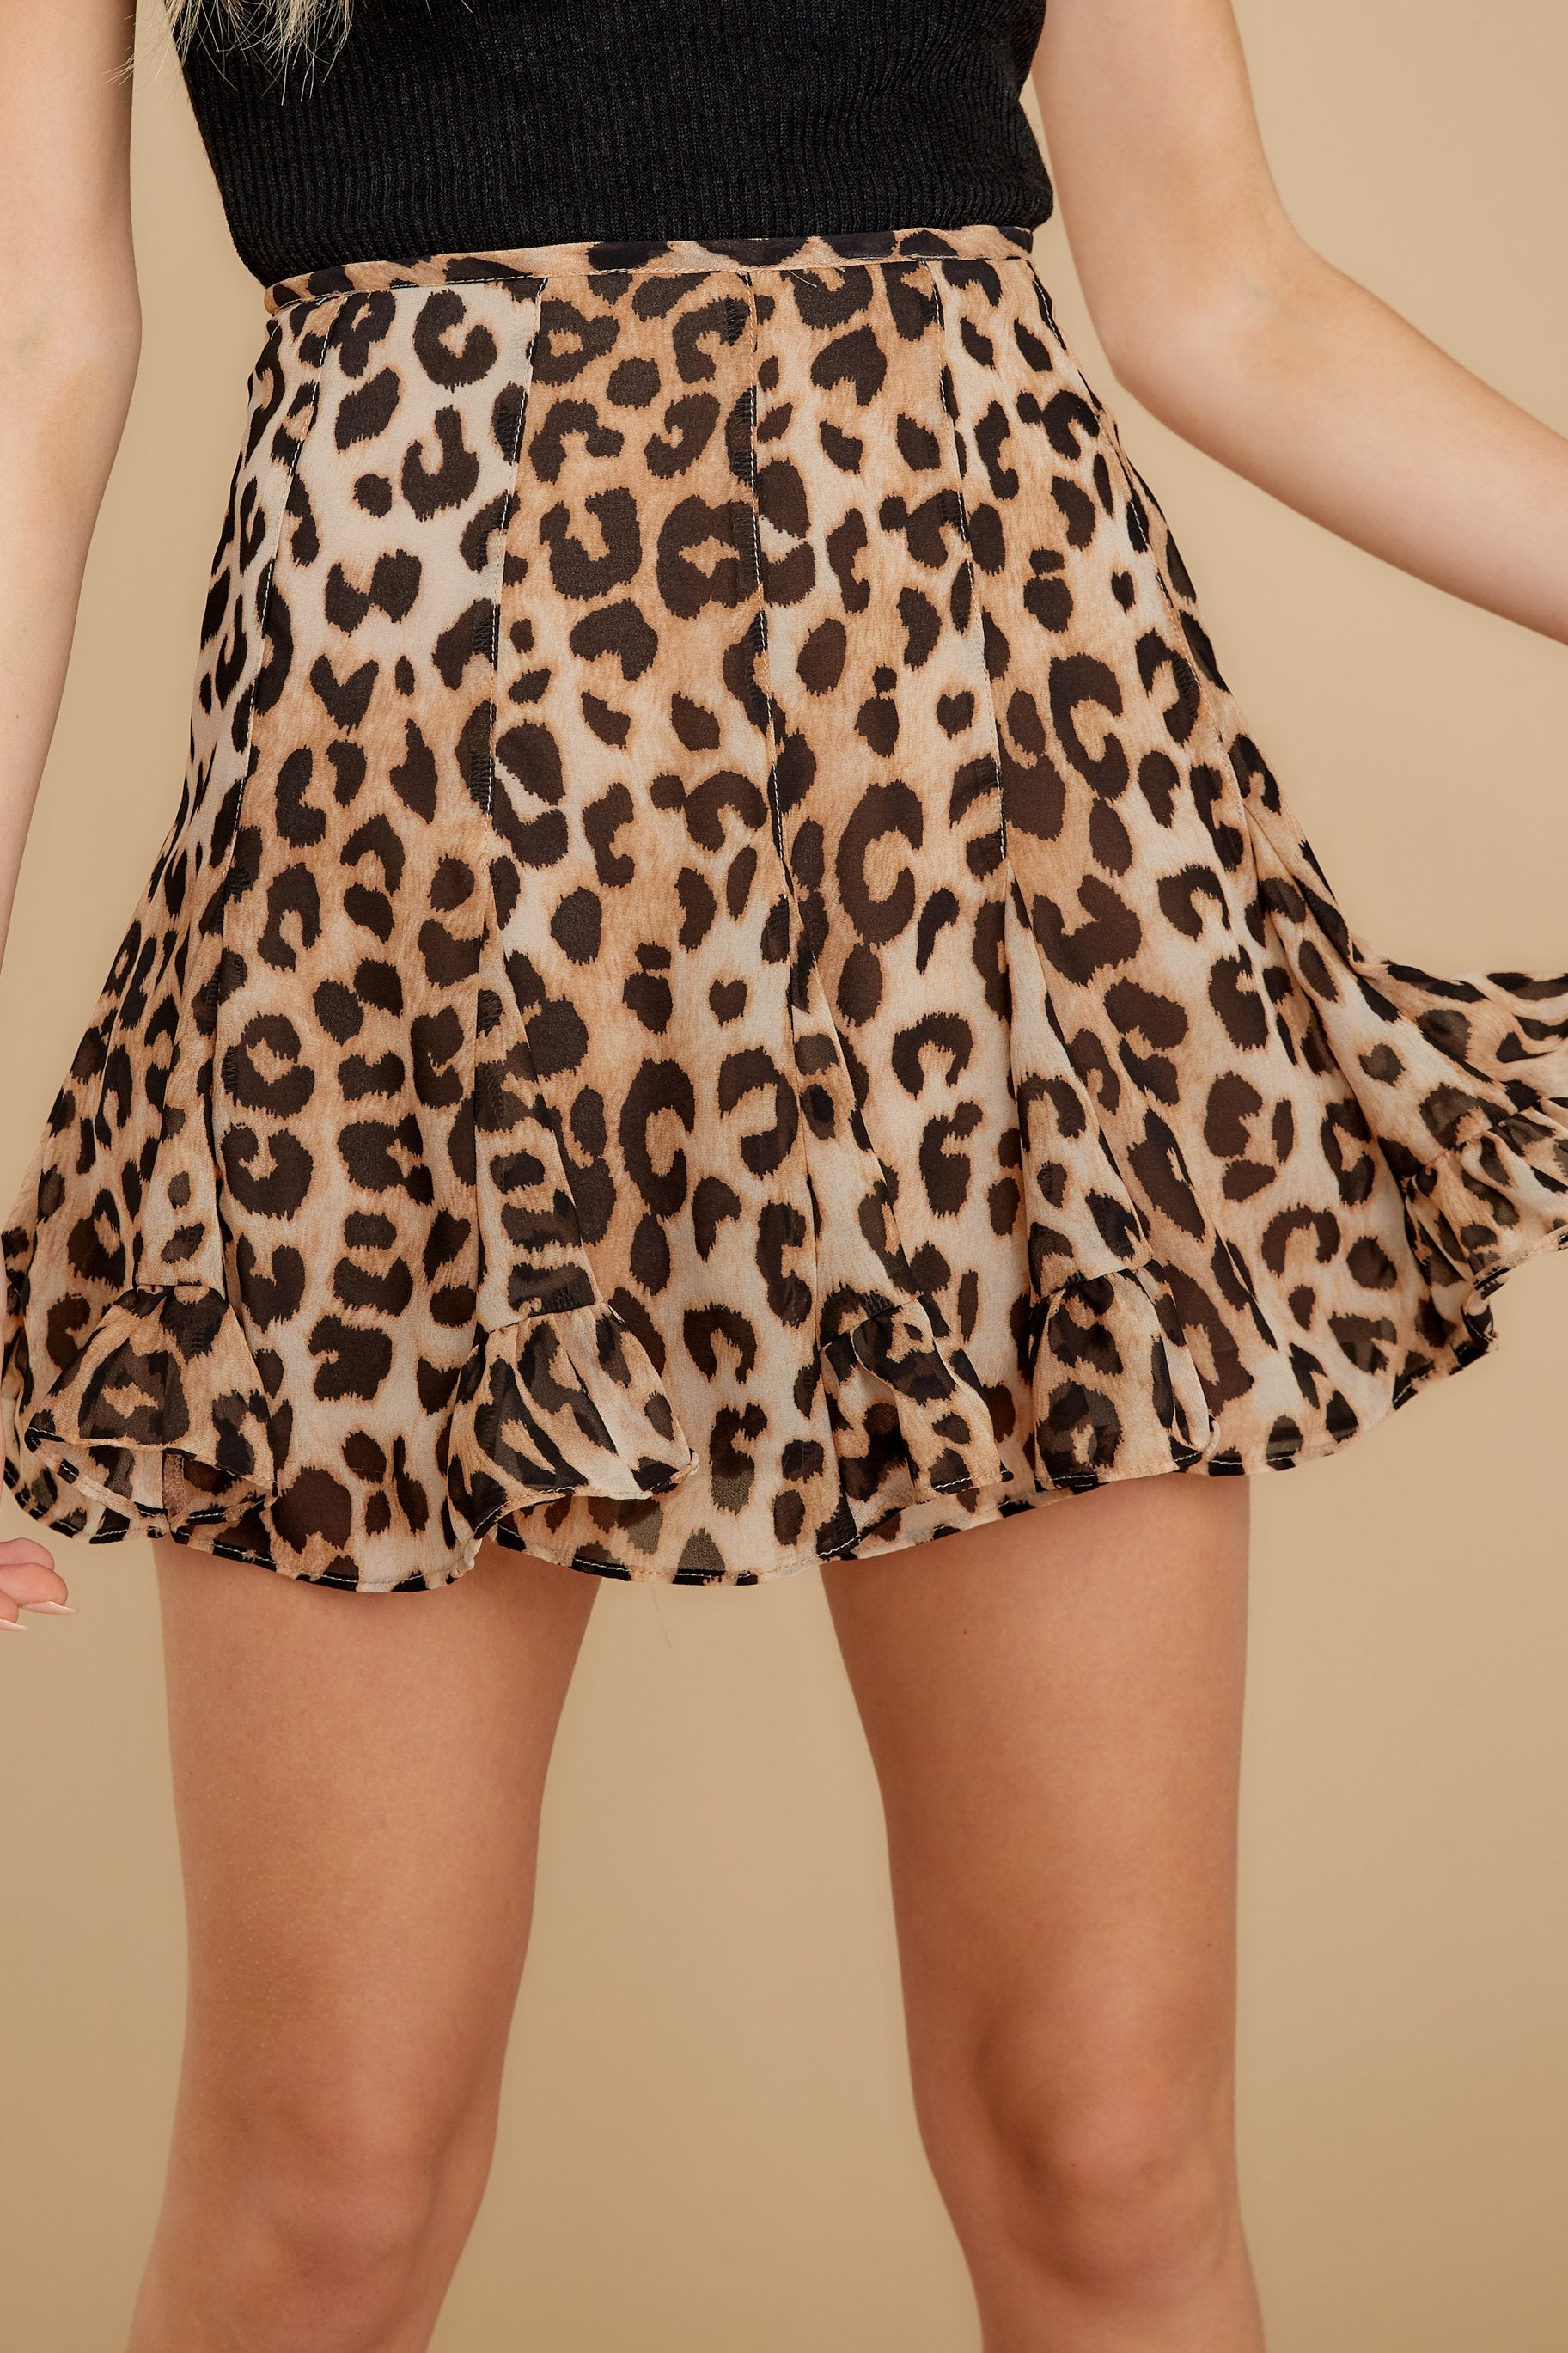 1 With Sass Leopard Print Skirt at reddress.com